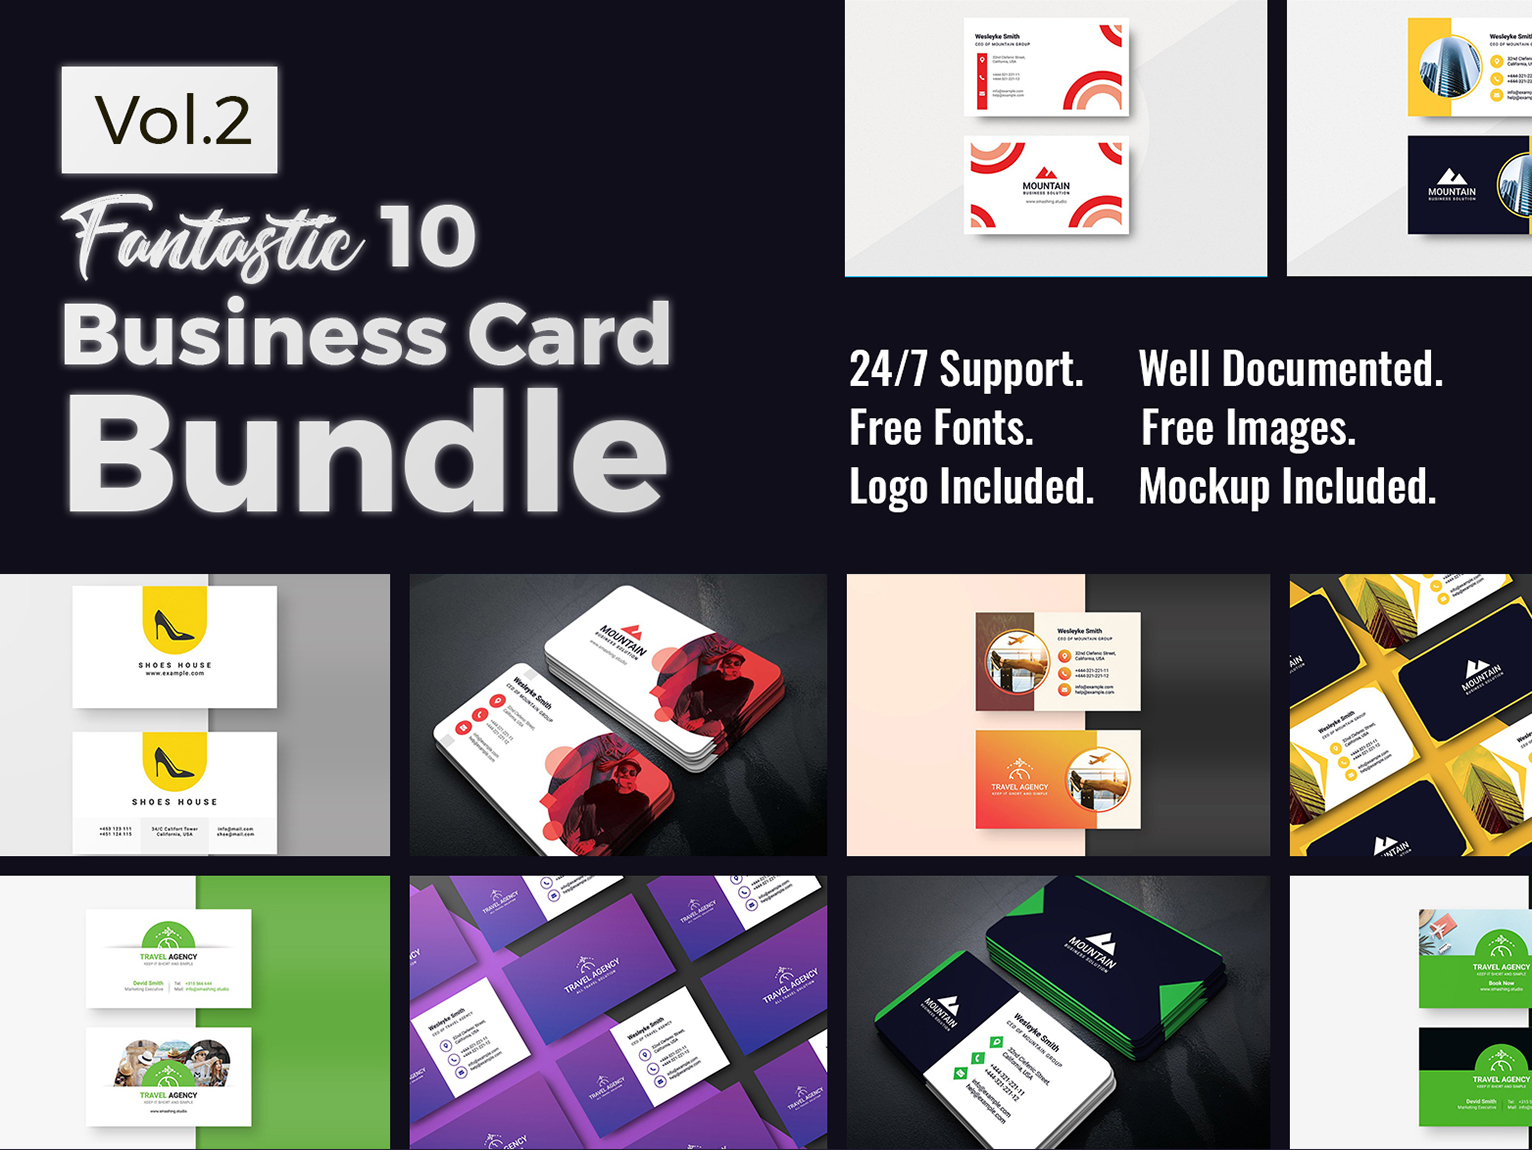 10 Business Card Bundle Vol.2